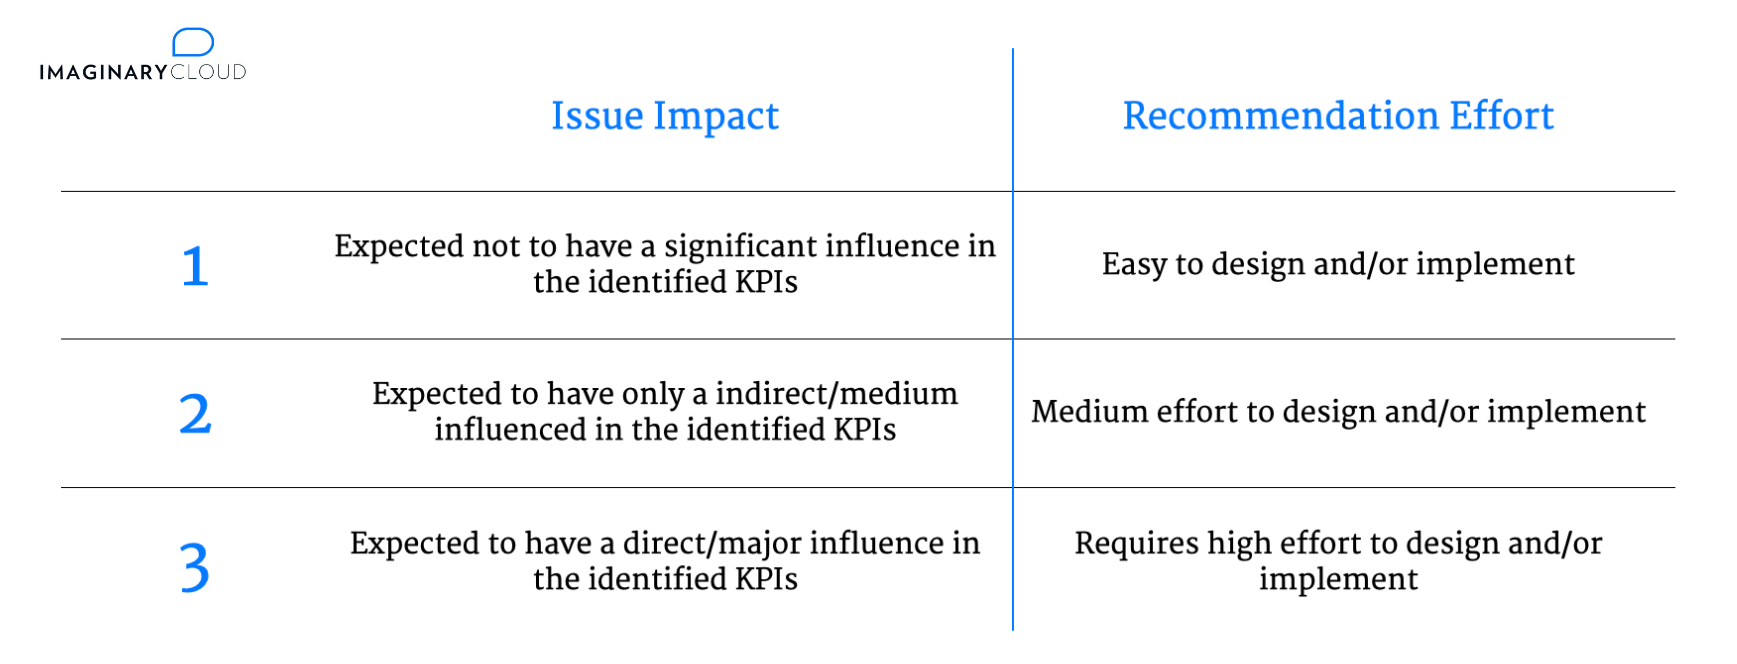 UX Audit - Issue Impact and Recommendation Effort Scores